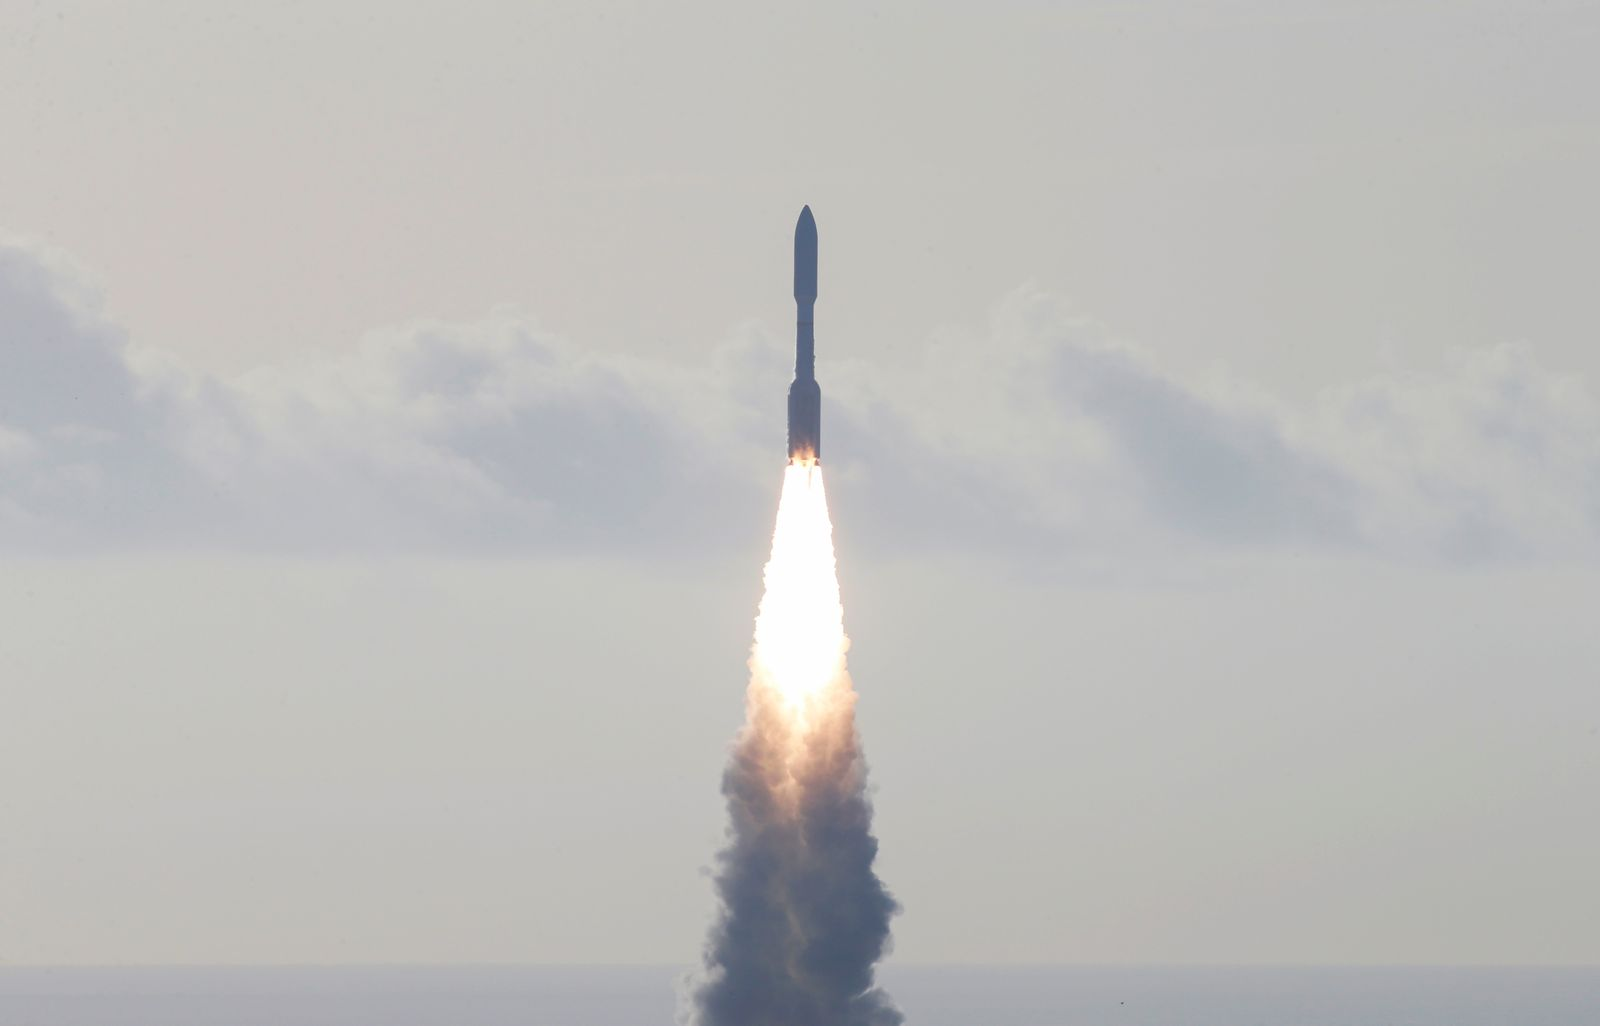 NASA's Mars 2020 Perseverance Rover launch in Cape Canaveral